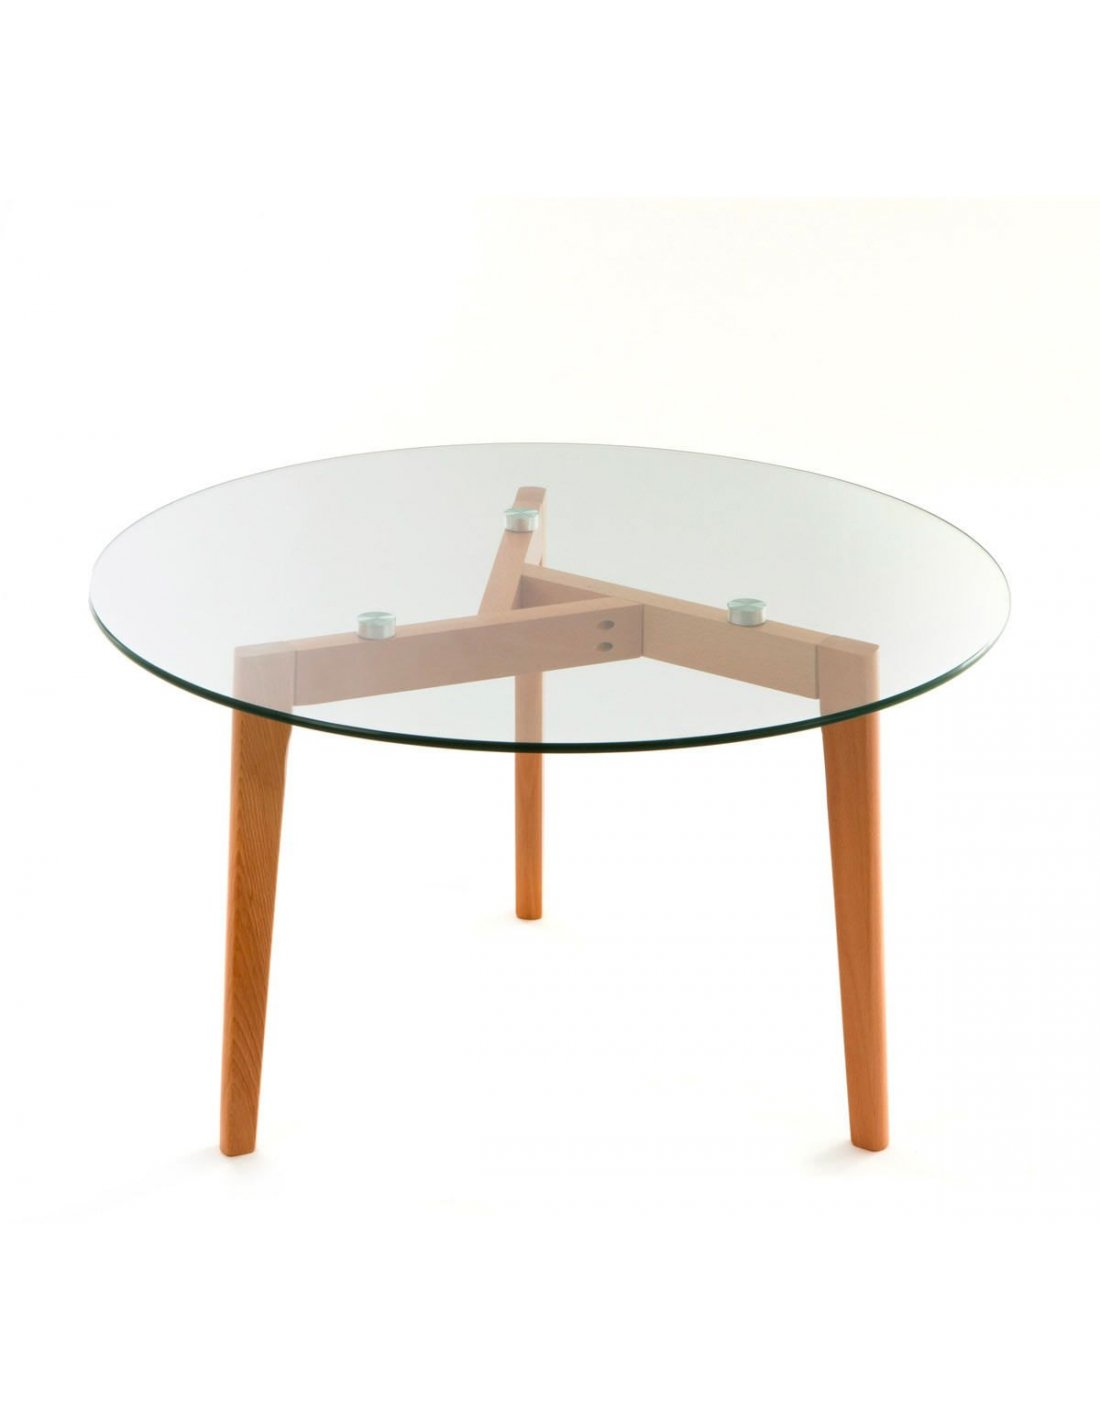 Table basse salon bois verre chambre kayoom transparent - Table basse salon verre ...